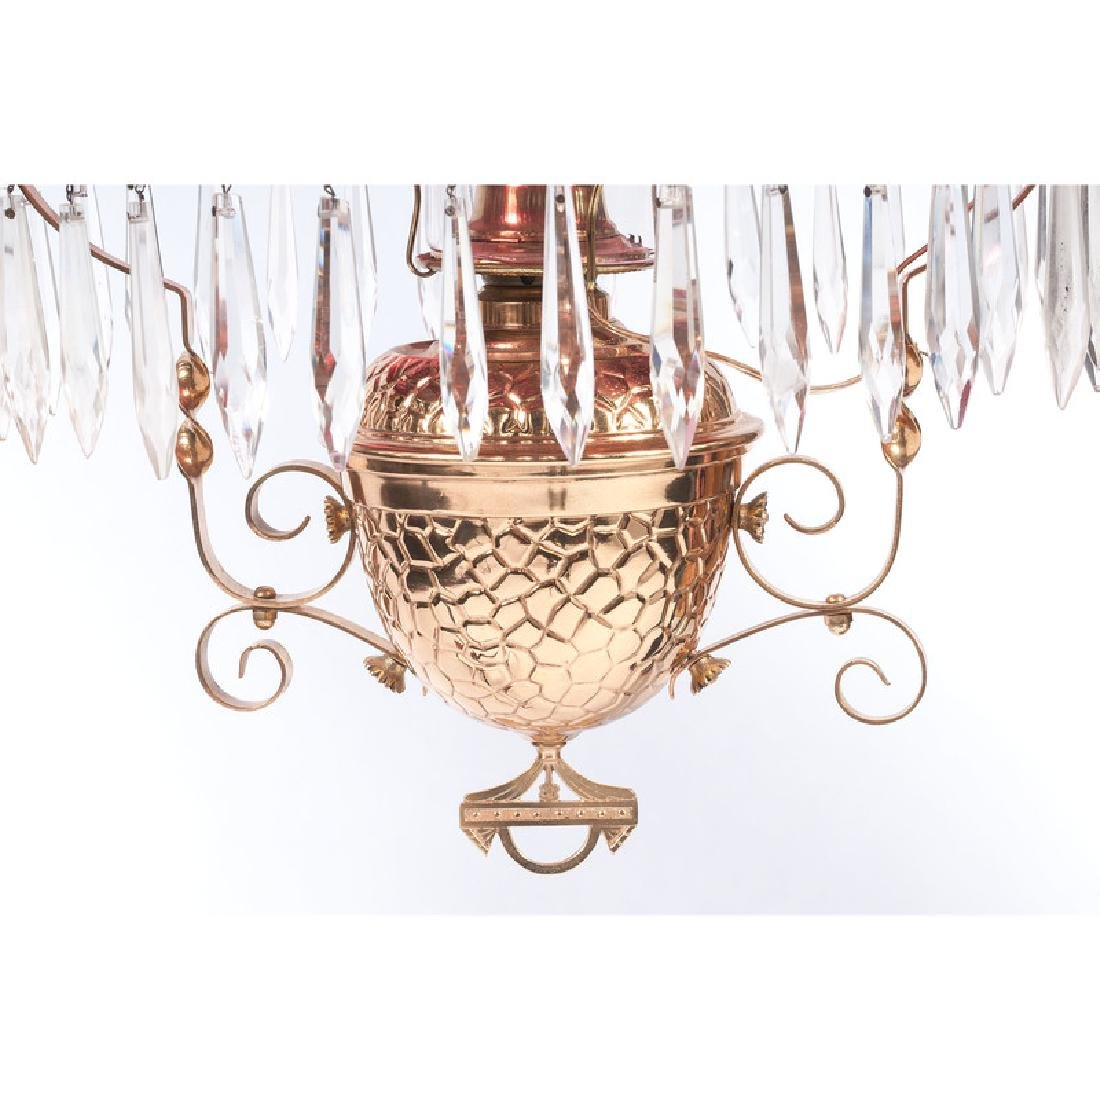 Cranberry Glass Chandelier with Prisms - 3